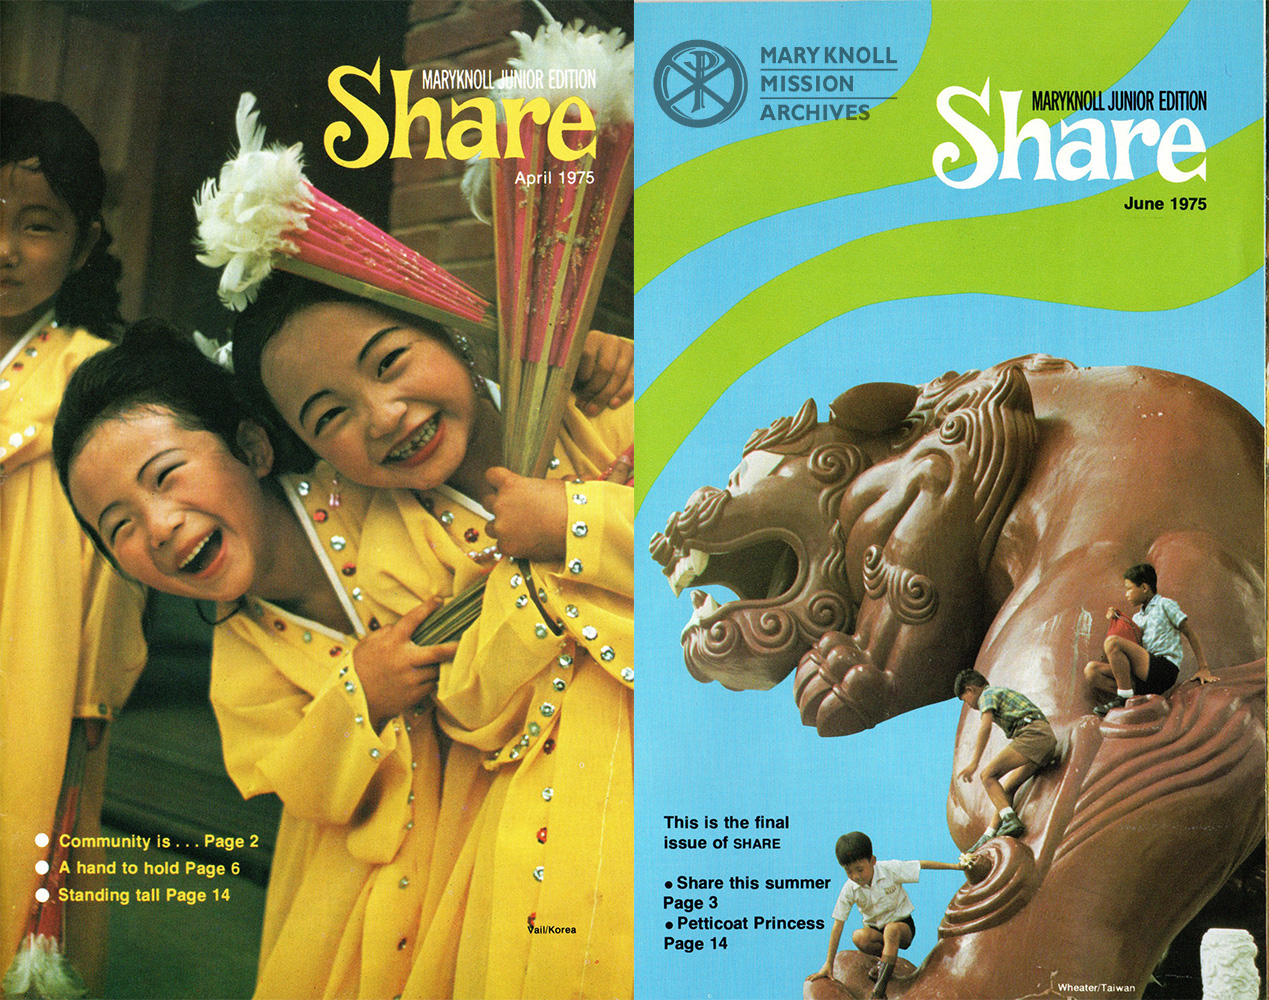 Two covers of Share, April and June 1975